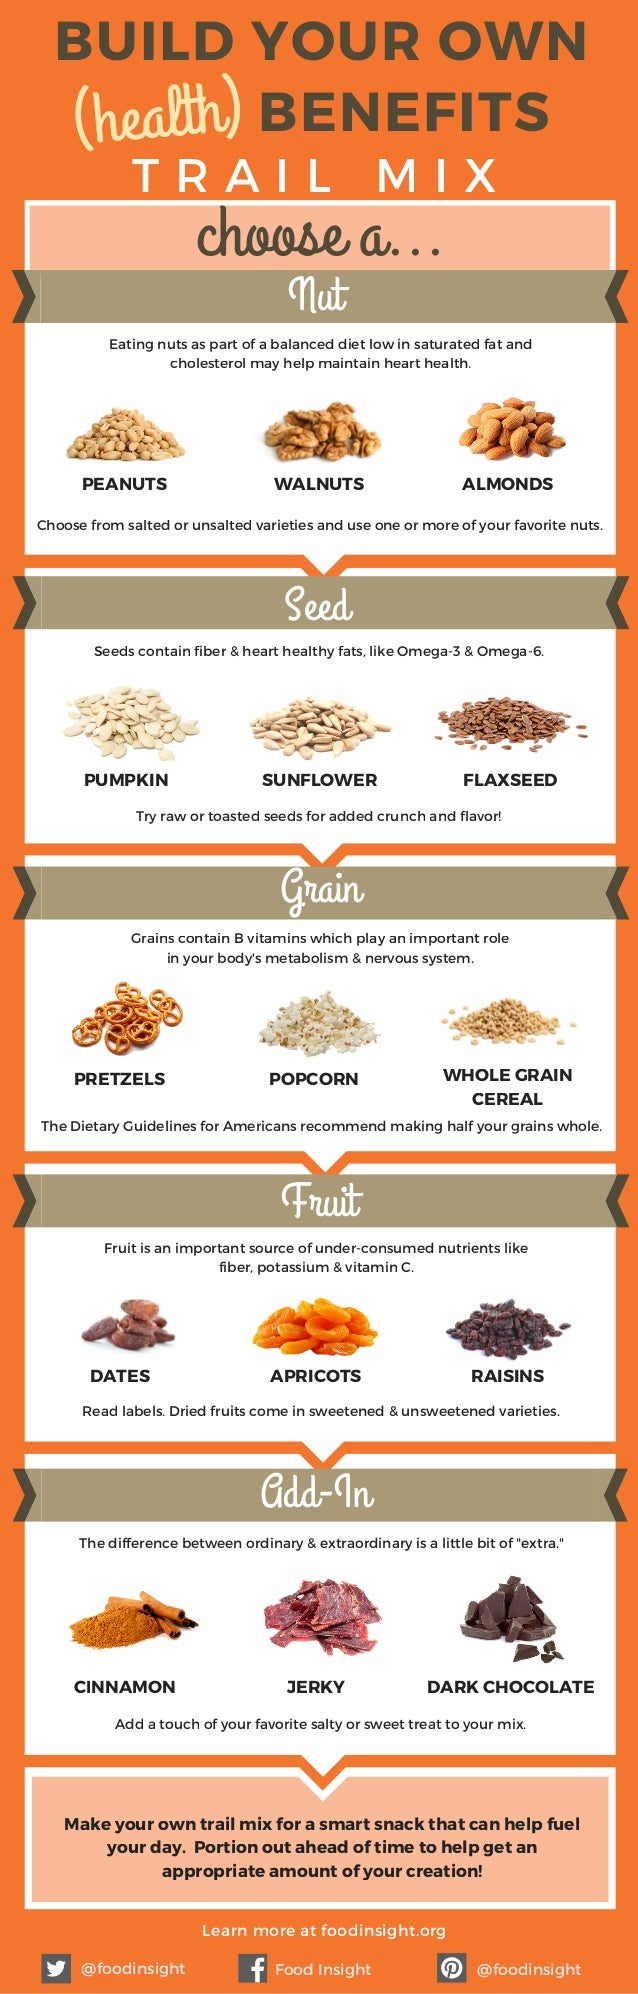 BUILD YOUR OWN T R A I L M I X Nut Seed Grain Add-In Eating nuts as part of a balanced diet low in saturated fat and chole...